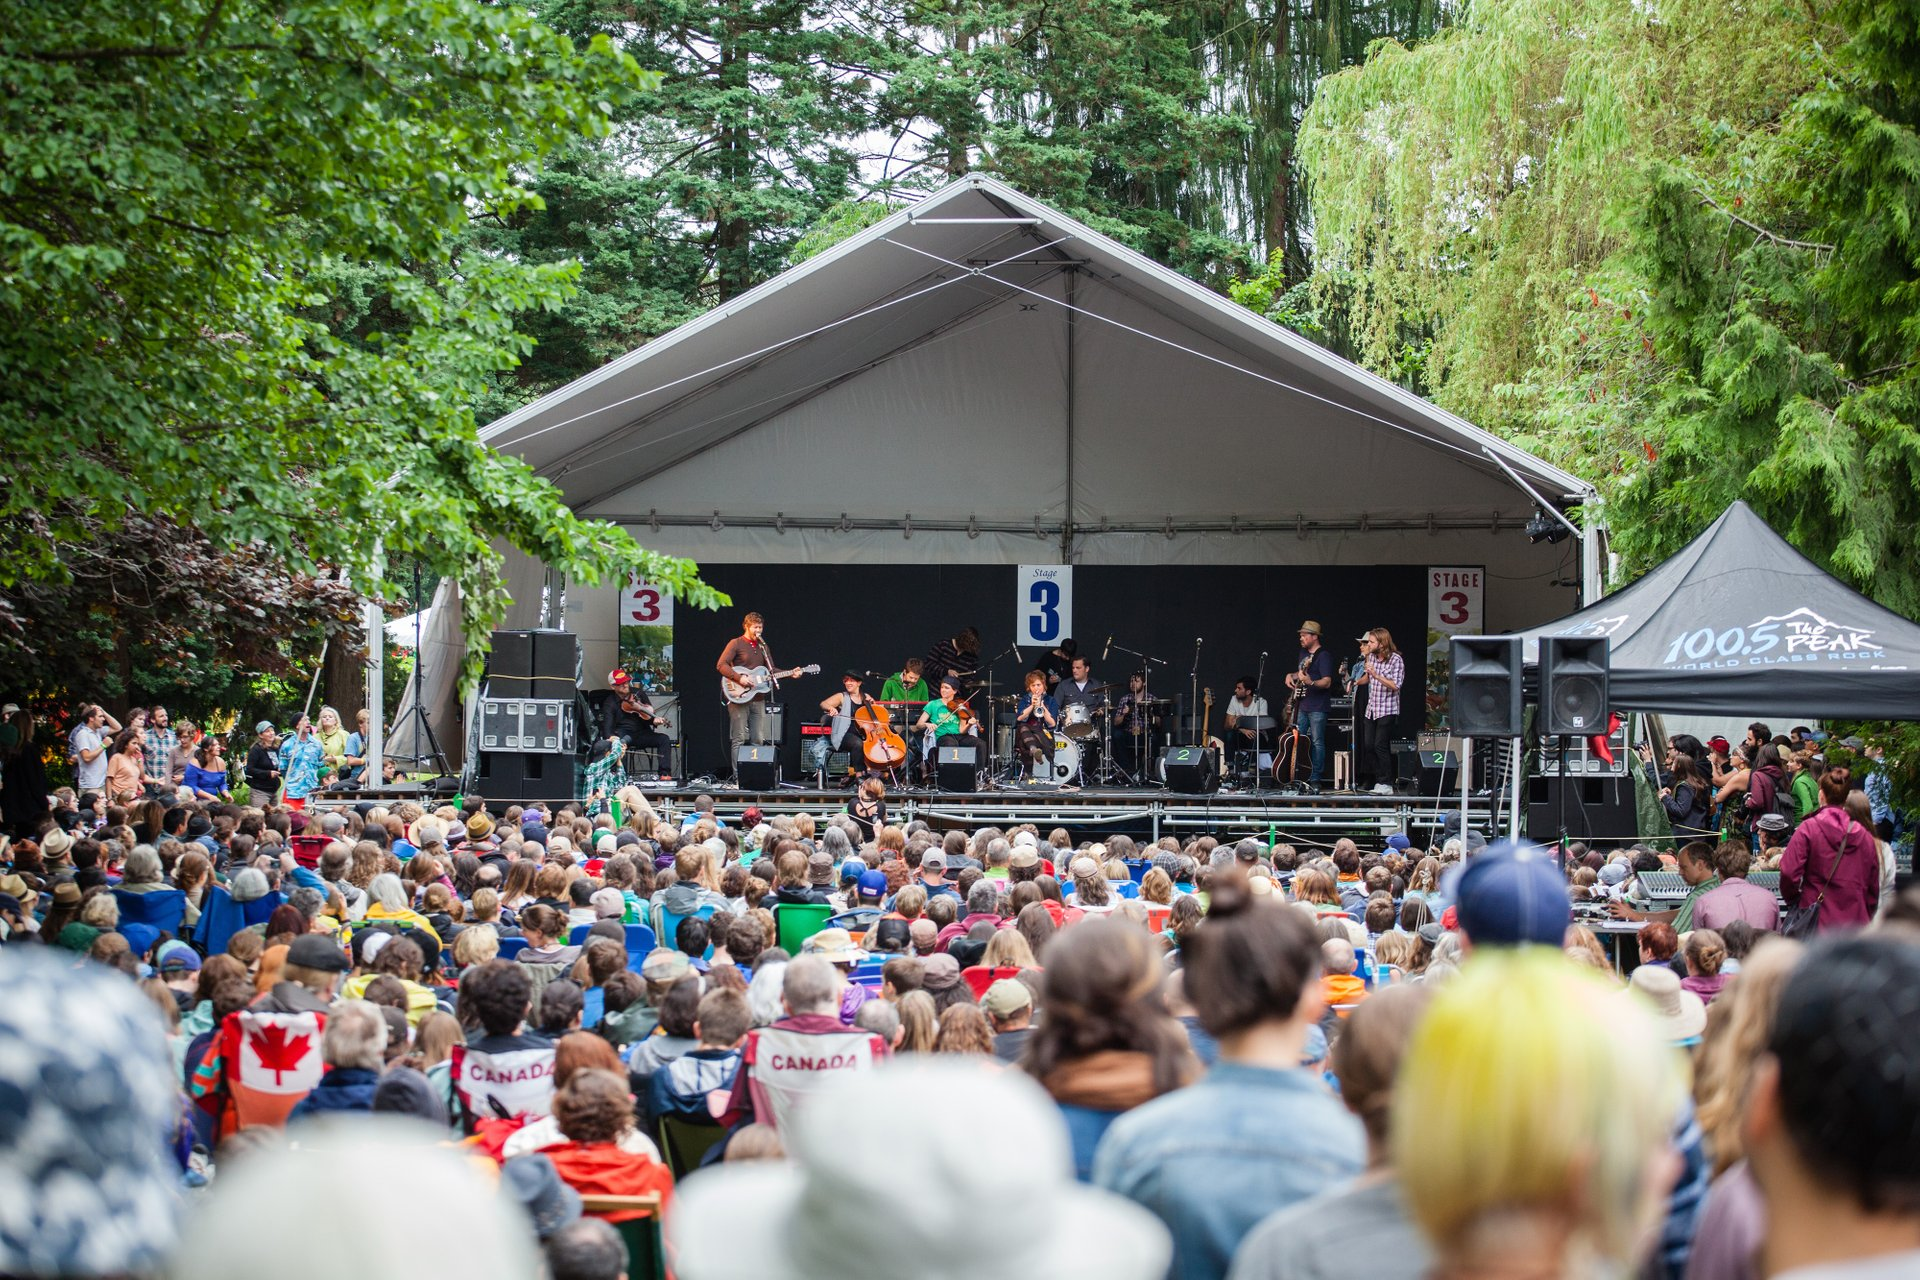 Best time to see Vancouver Folk Music Festival in Vancouver